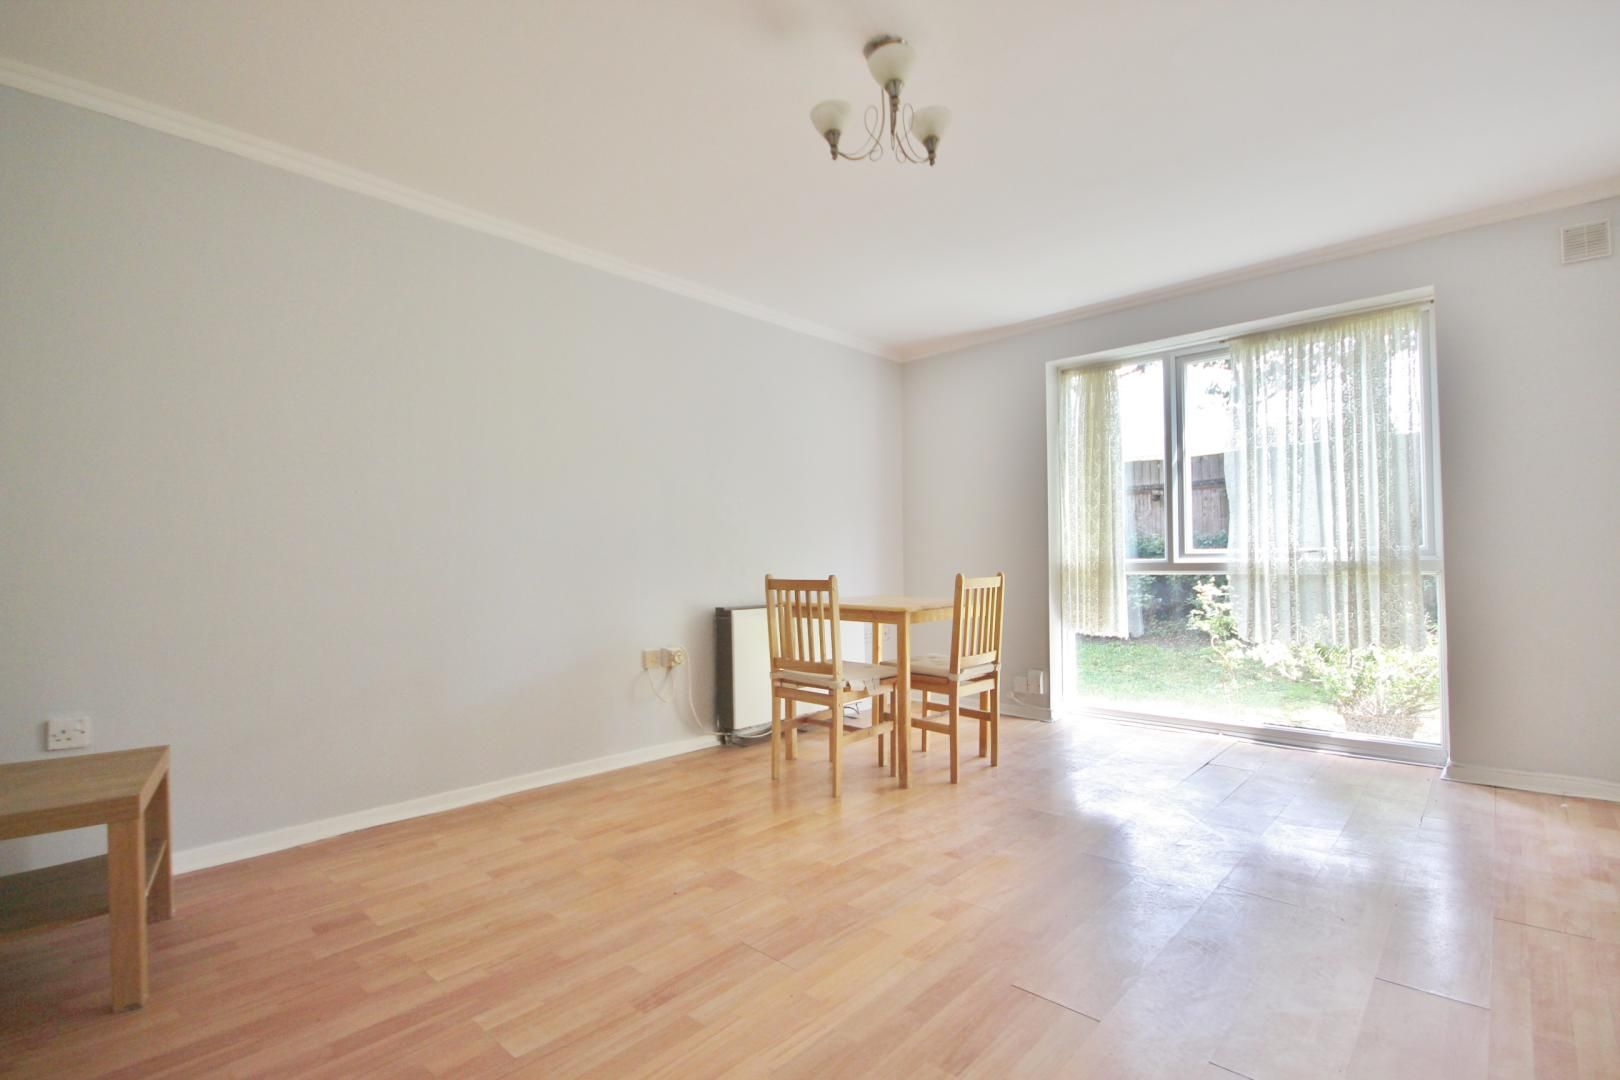 2 bed flat for sale in Meads Court, E15